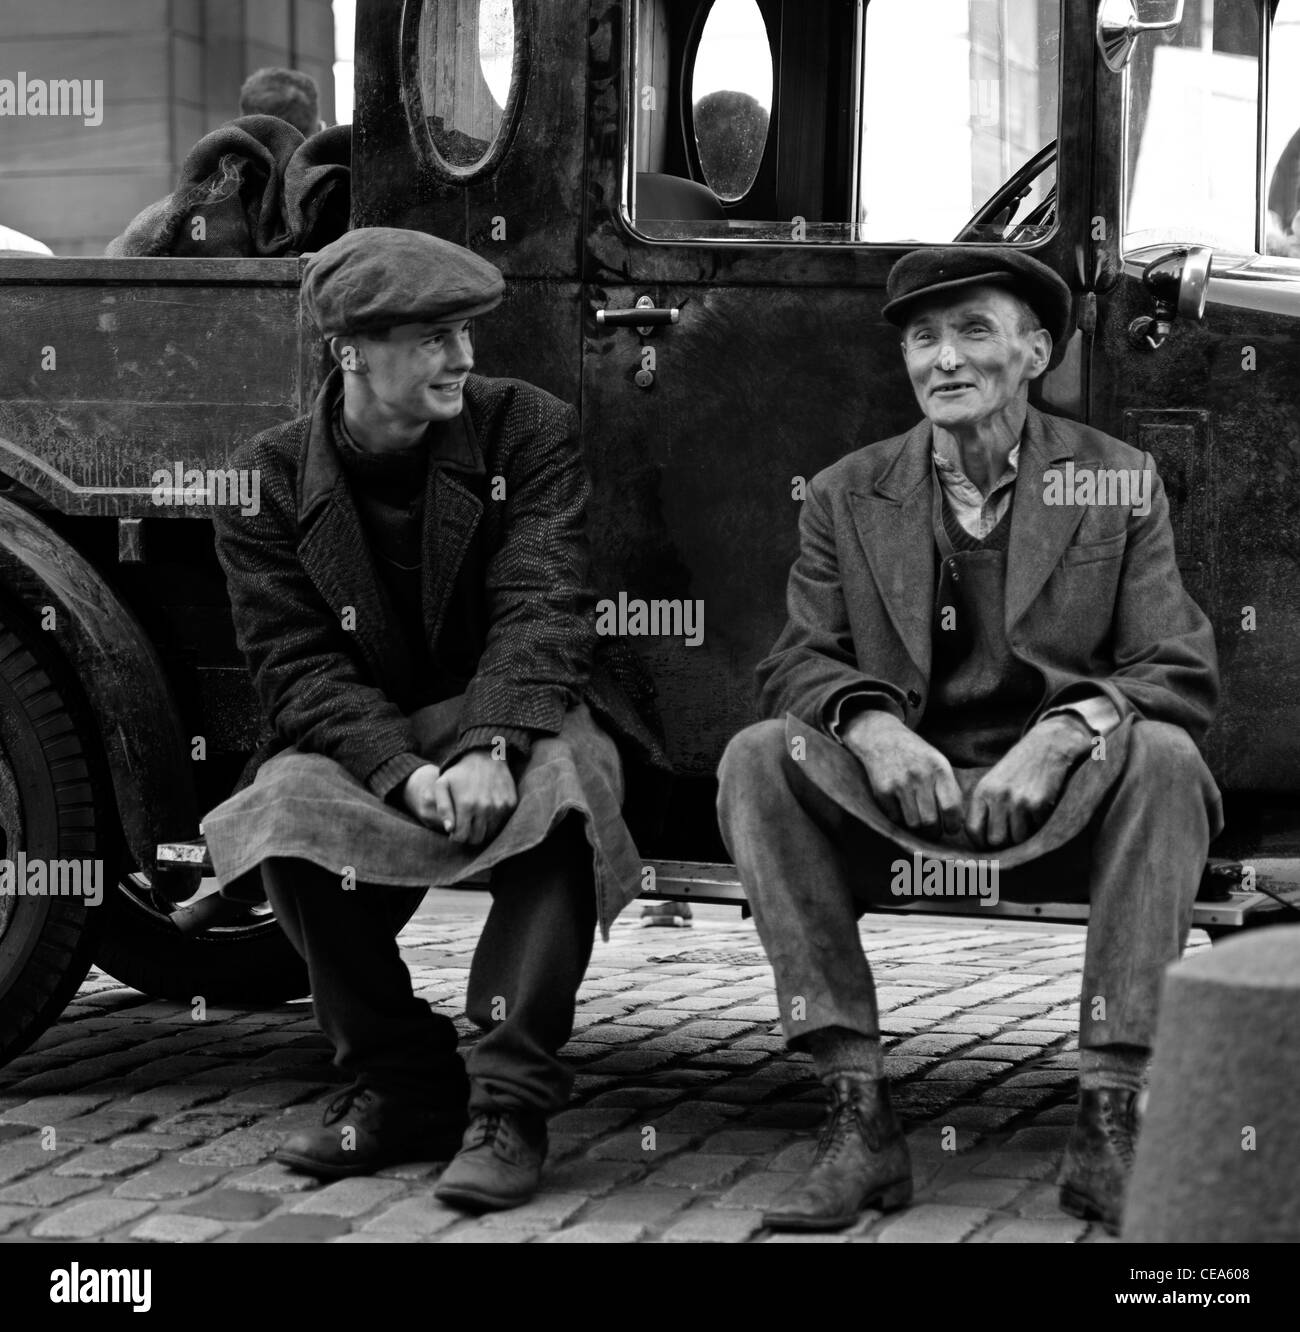 Man and boy in vintage outfits dressed as coalmen sitting on step of old fashioned truck Edinburgh Scotland UK monochrome - Stock Image